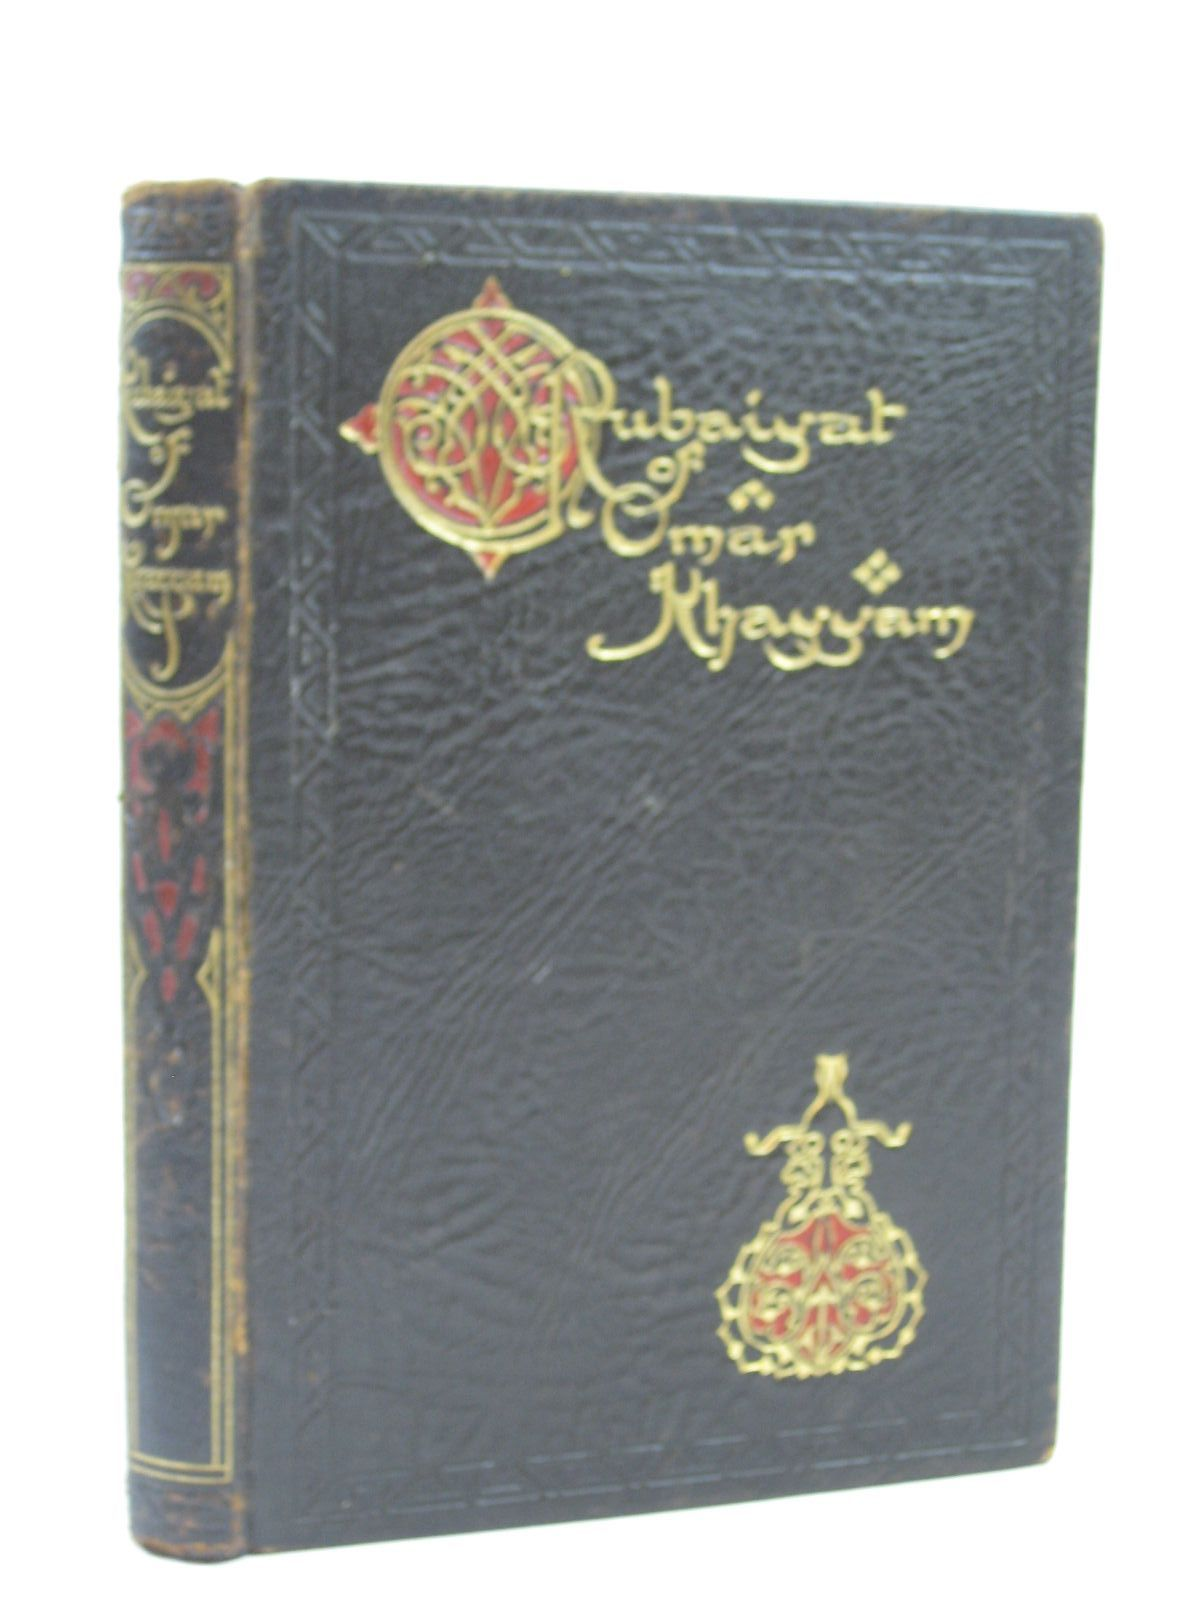 Photo of RUBAIYAT OF OMAR KHAYYAM written by Fitzgerald, Edward illustrated by Pogany, Willy published by George G. Harrap & Co. Ltd. (STOCK CODE: 1406392)  for sale by Stella & Rose's Books